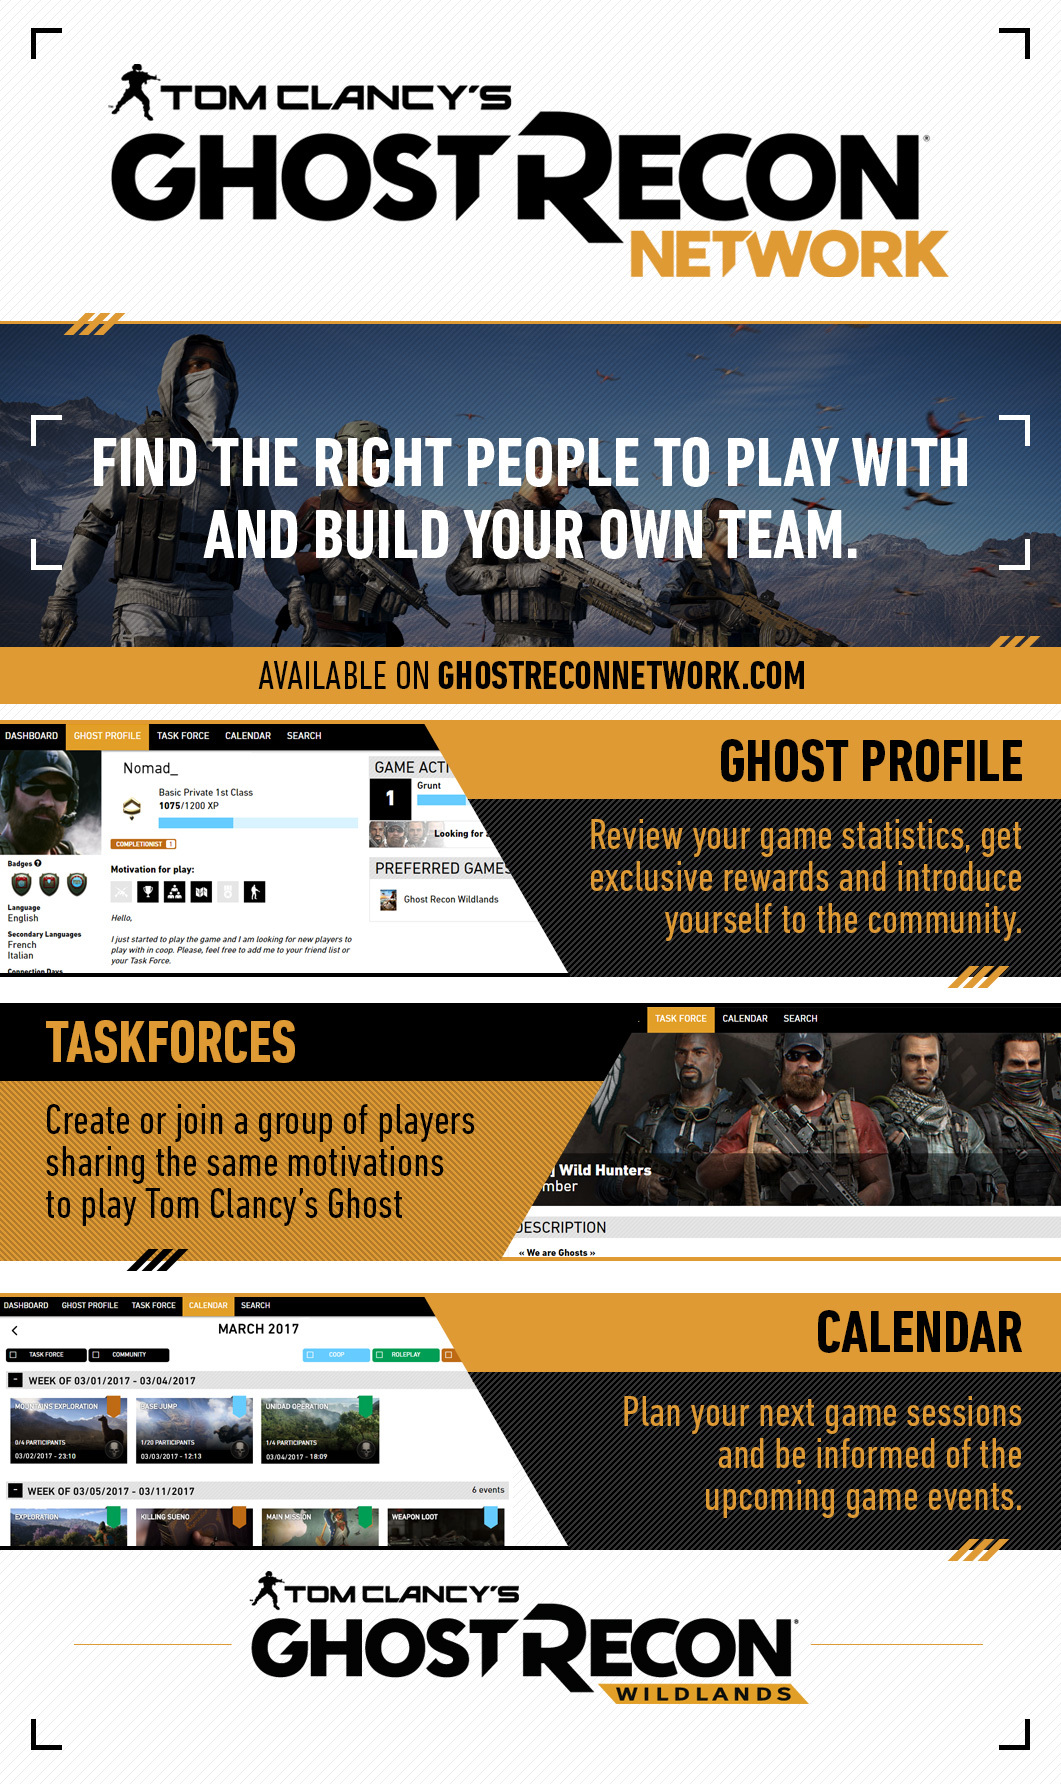 Feb 16, 2017 Ghost Recon Wildlands Open Beta will take place from